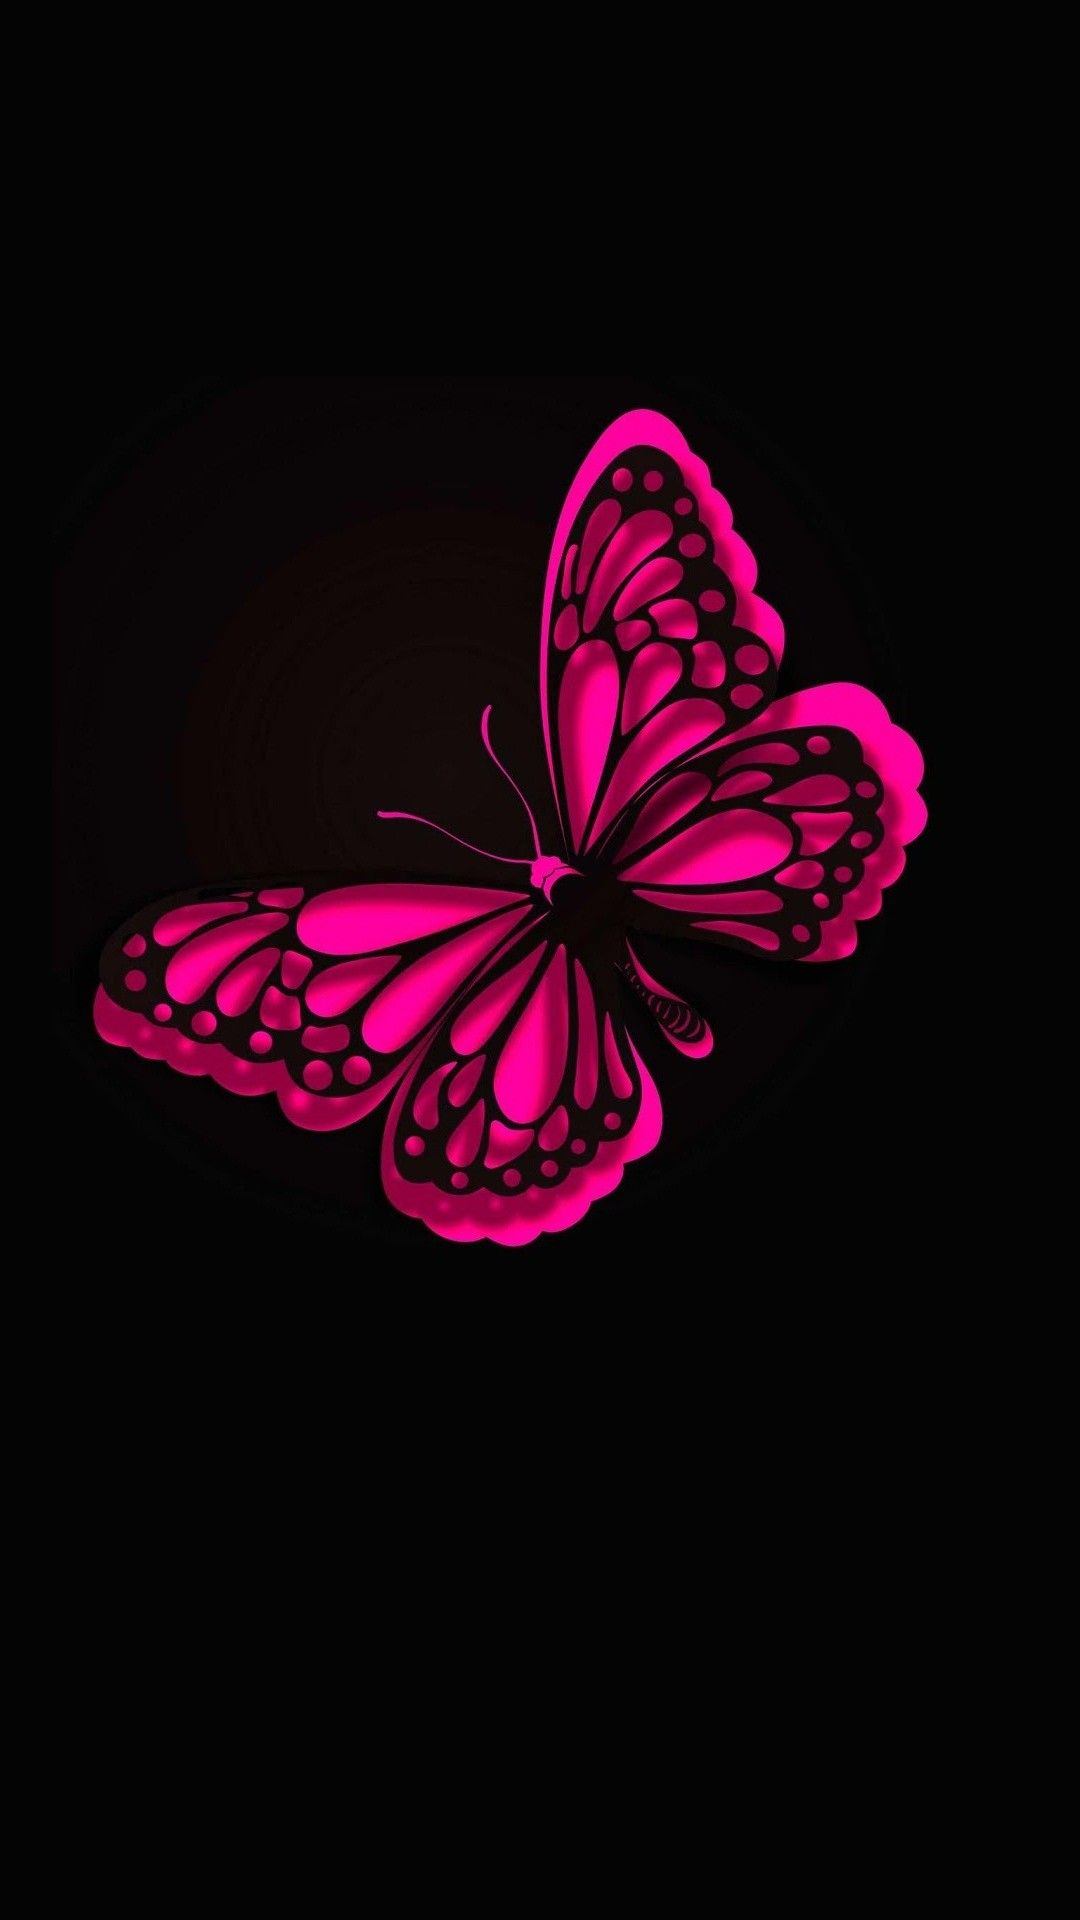 Iphone Wallpaper Hd Pink Butterfly - Black Pink Butterfly Background , HD Wallpaper & Backgrounds